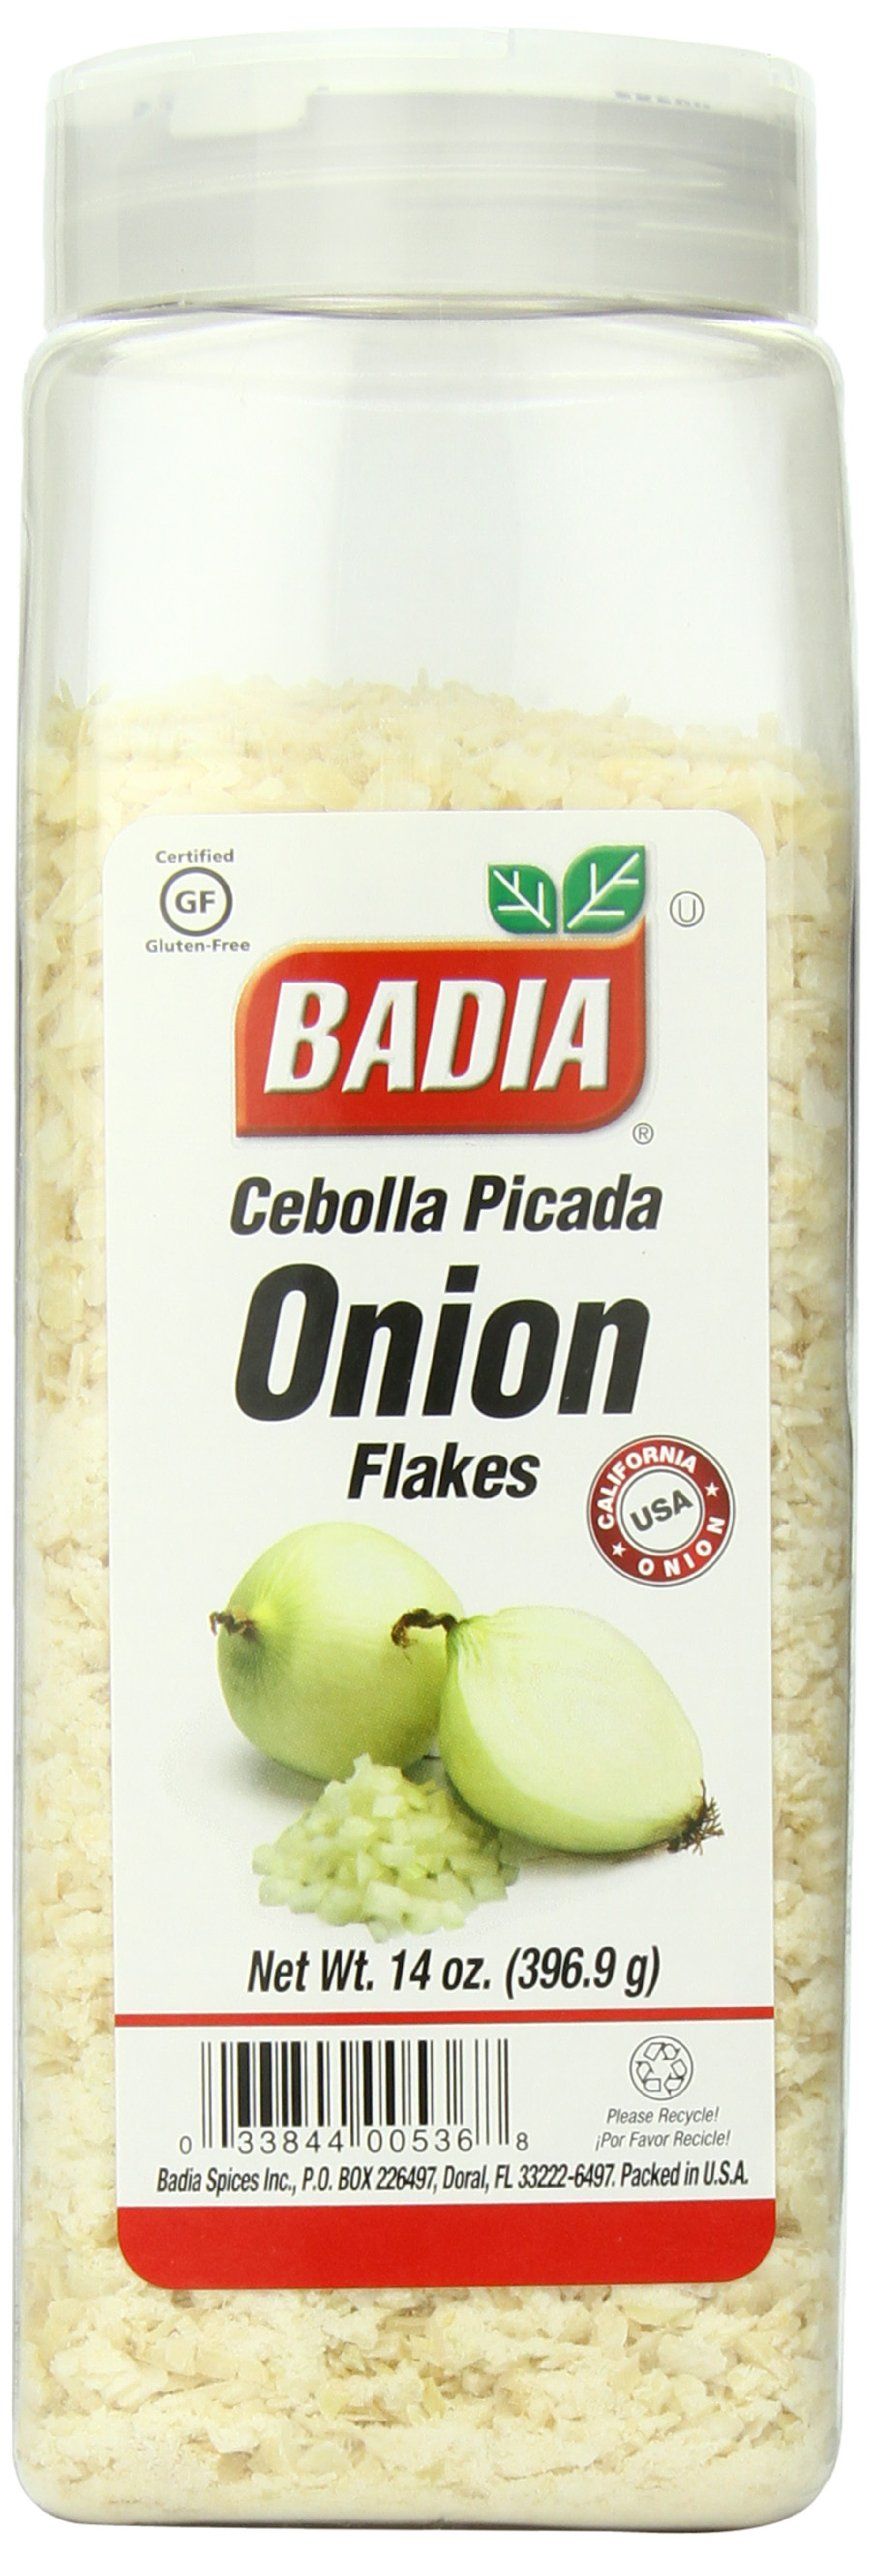 Badia Onion Flakes, 14 Ounce (Pack of 6)